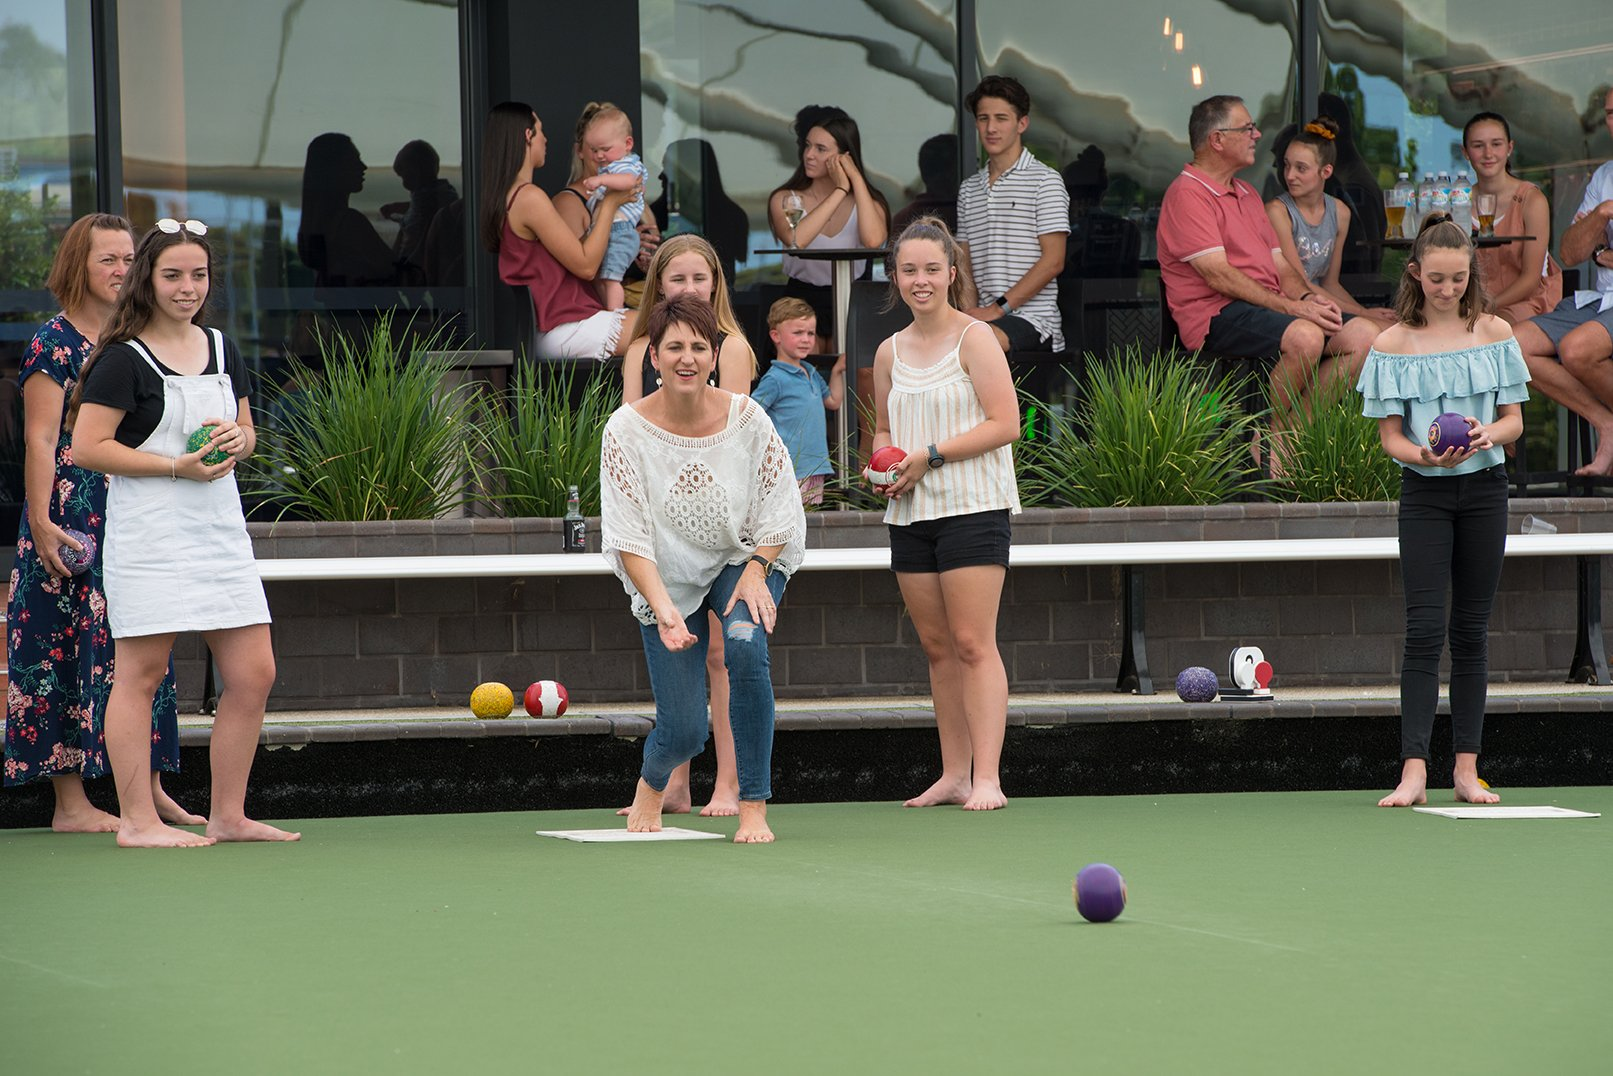 Family playing lawn bowls at moama bowling club